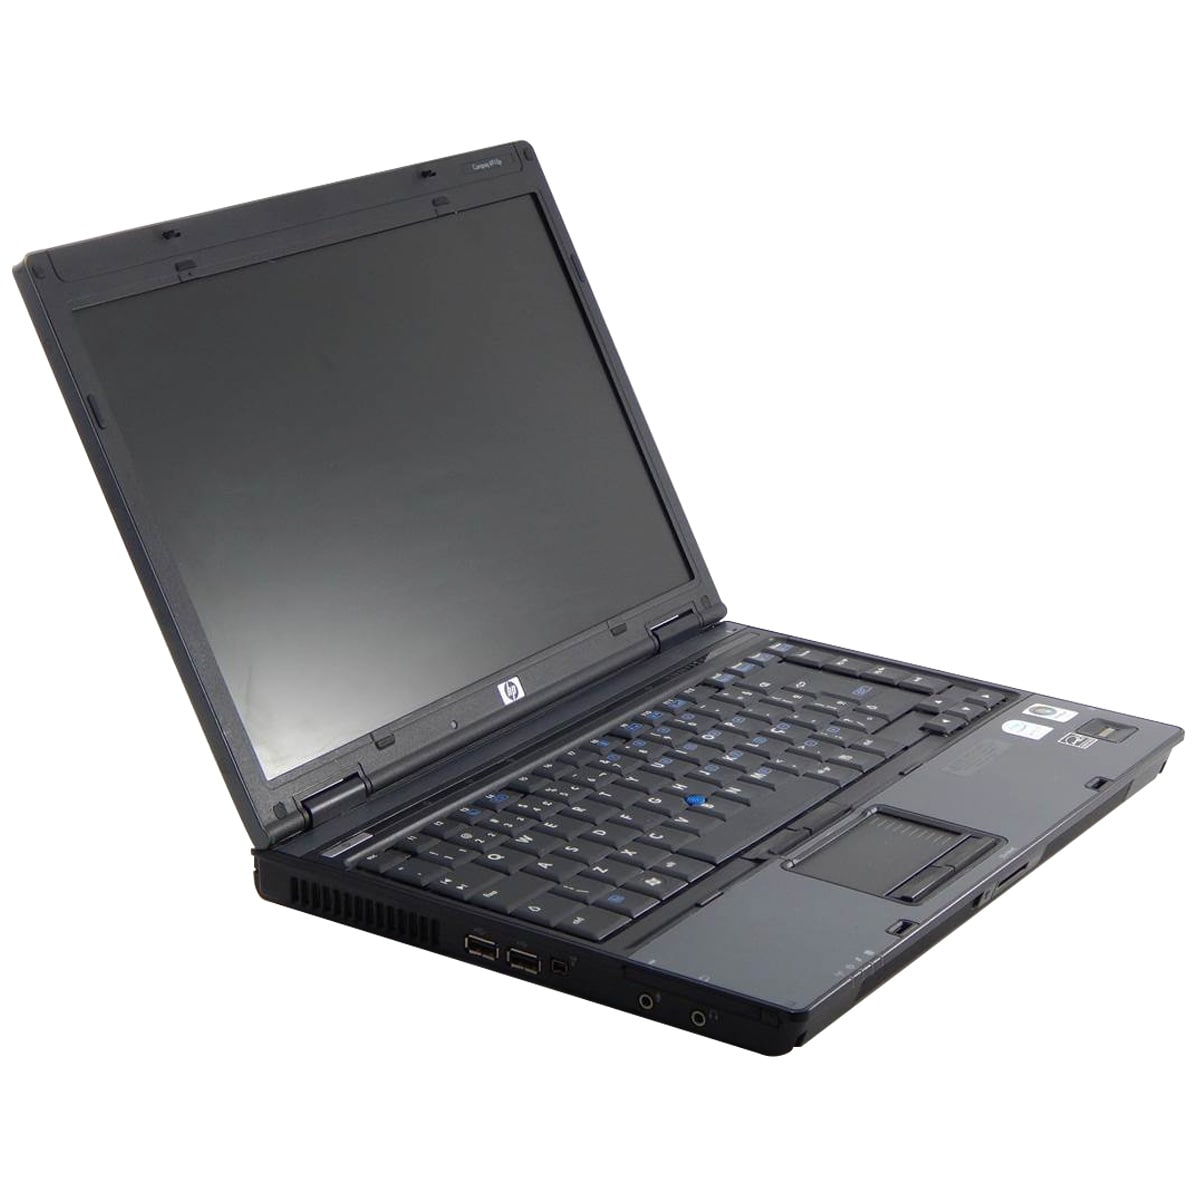 Notebook HP Compaq 6910p C2D T7500 2gb 160gb 14